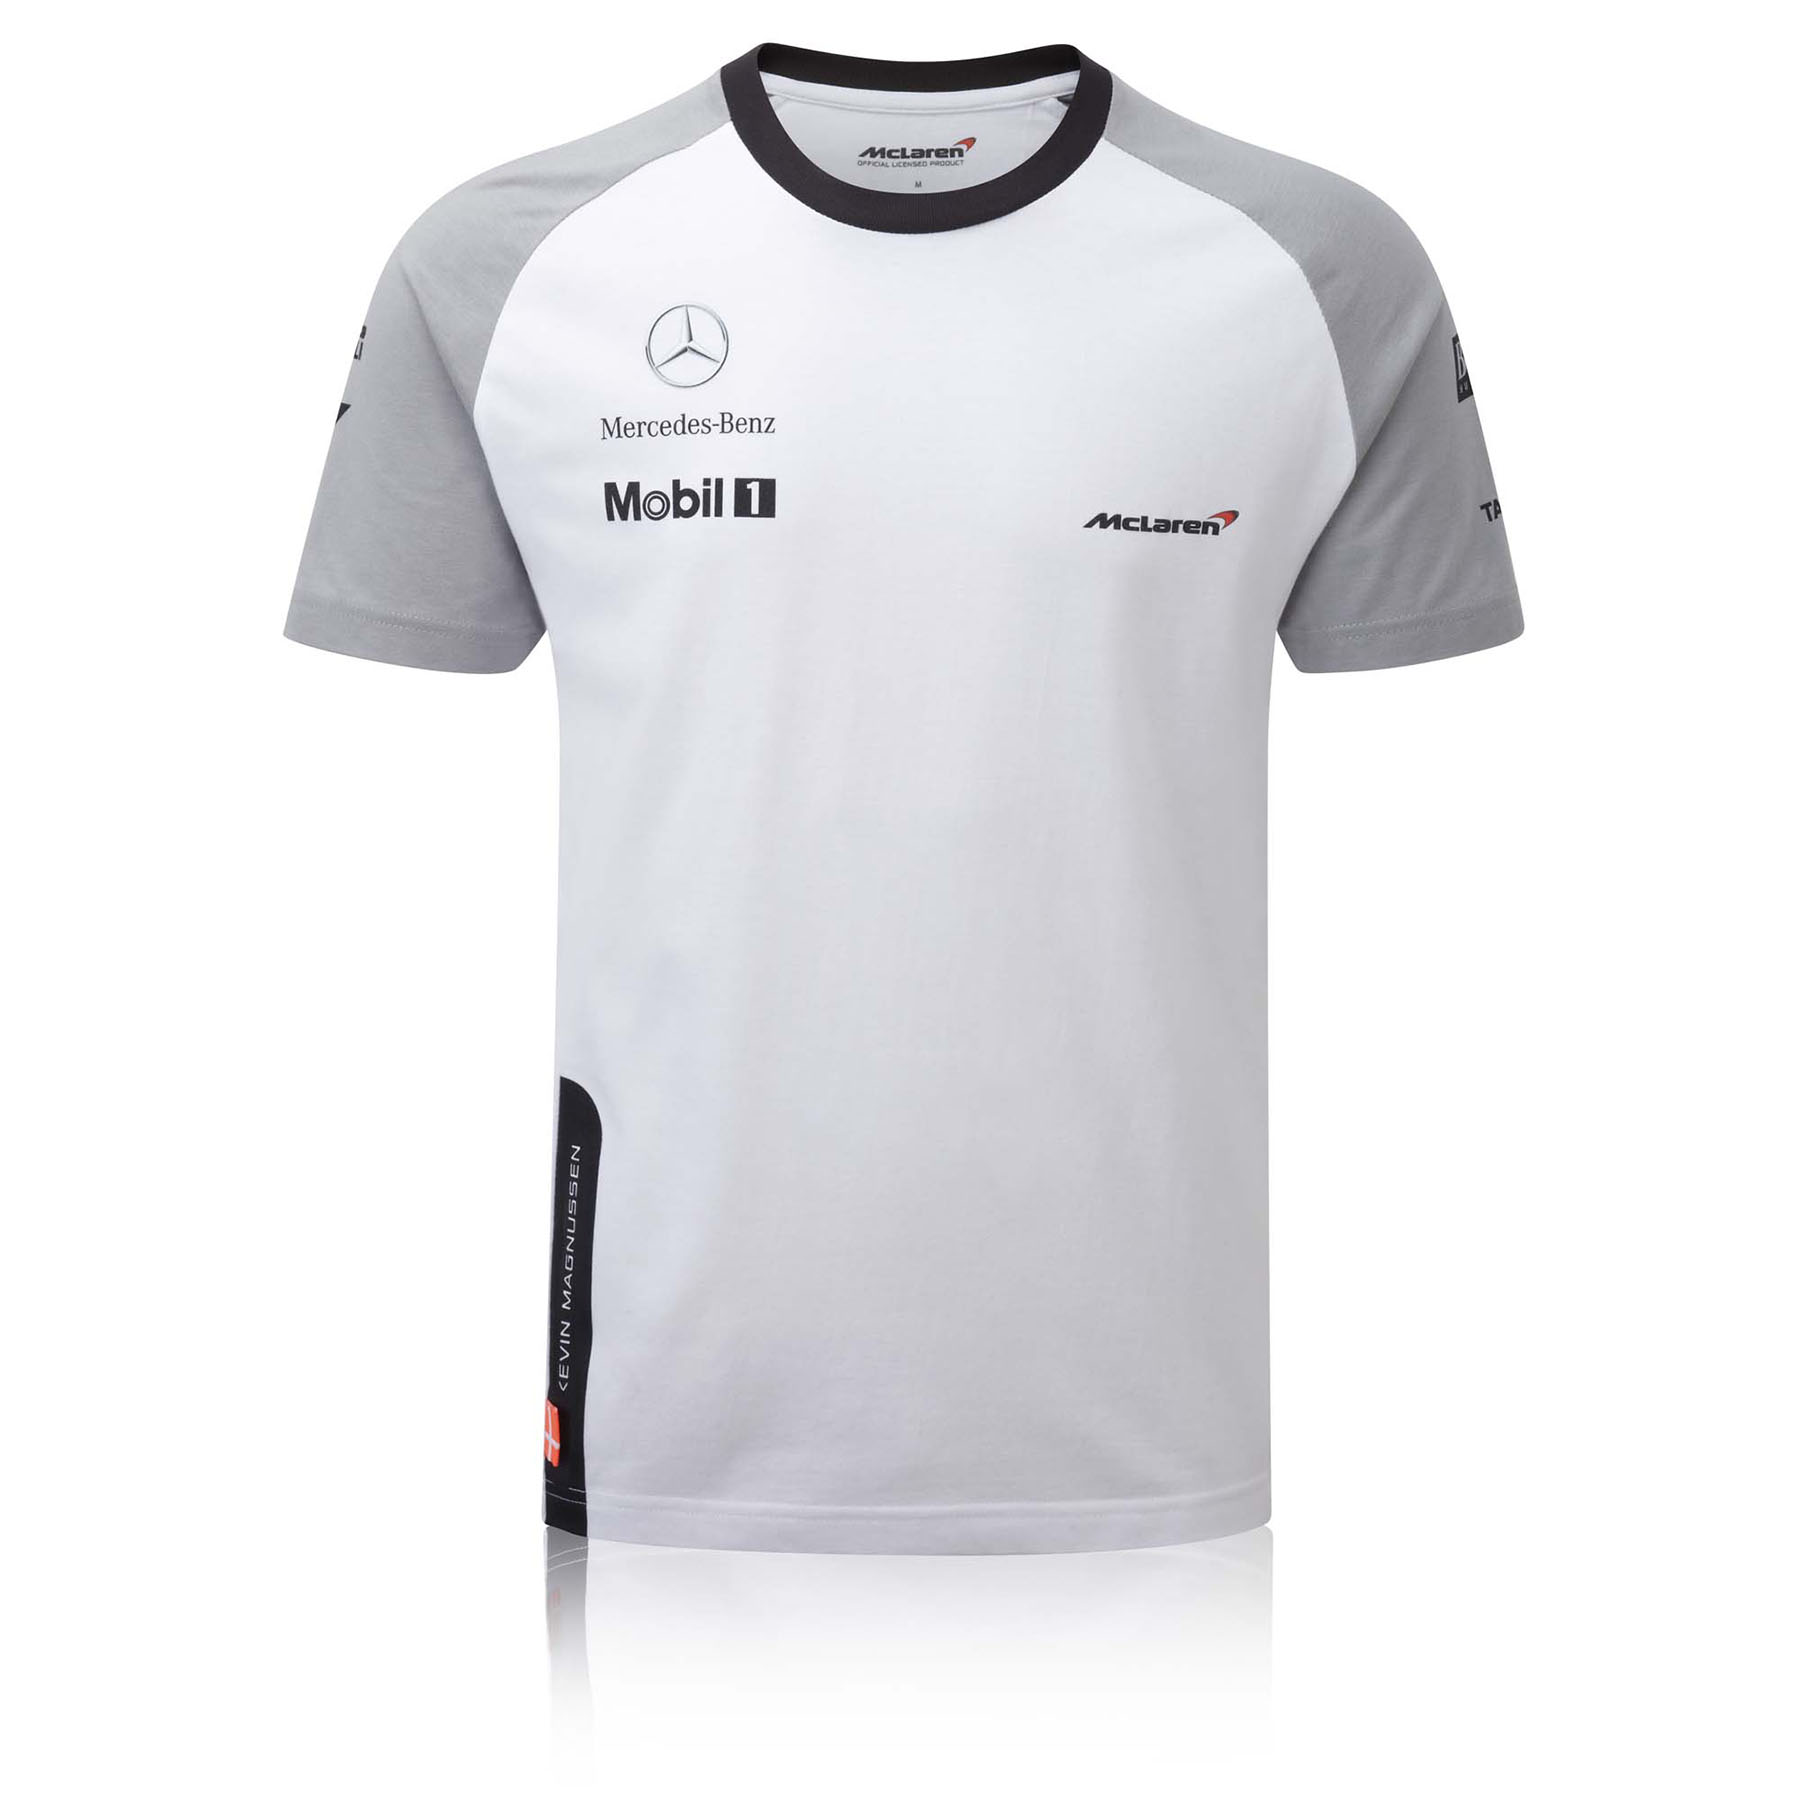 Team McLaren Magnussen Cotton T-Shirt